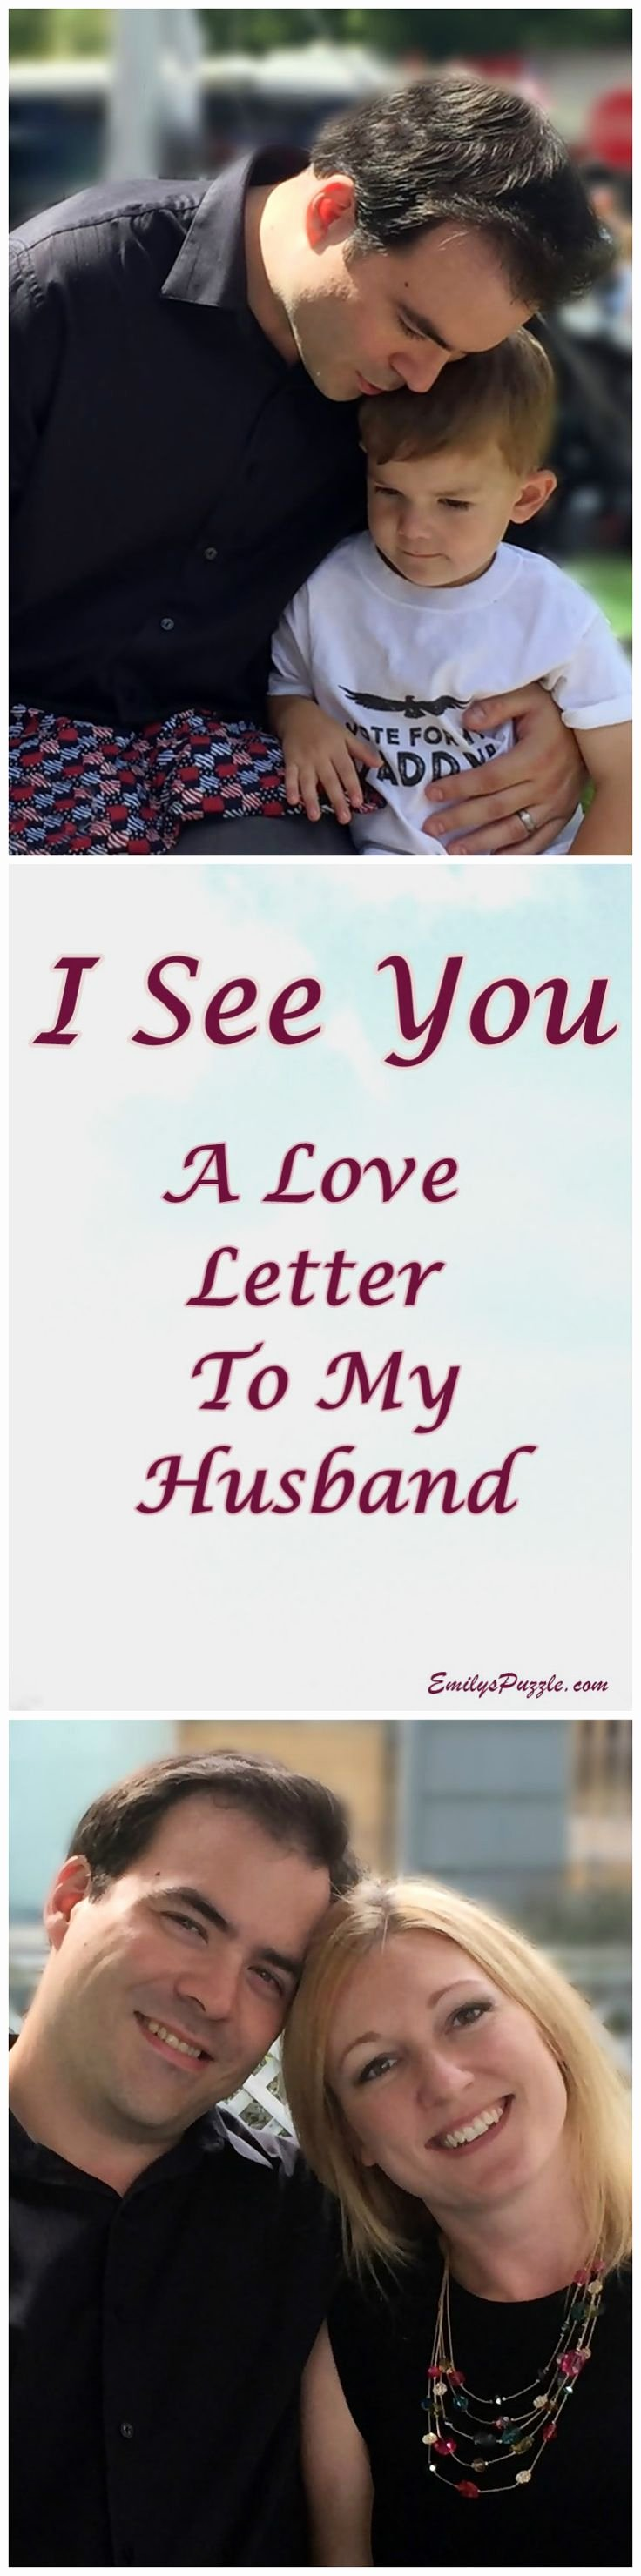 Letter to My Husband New I See You A Love Letter to My Husband